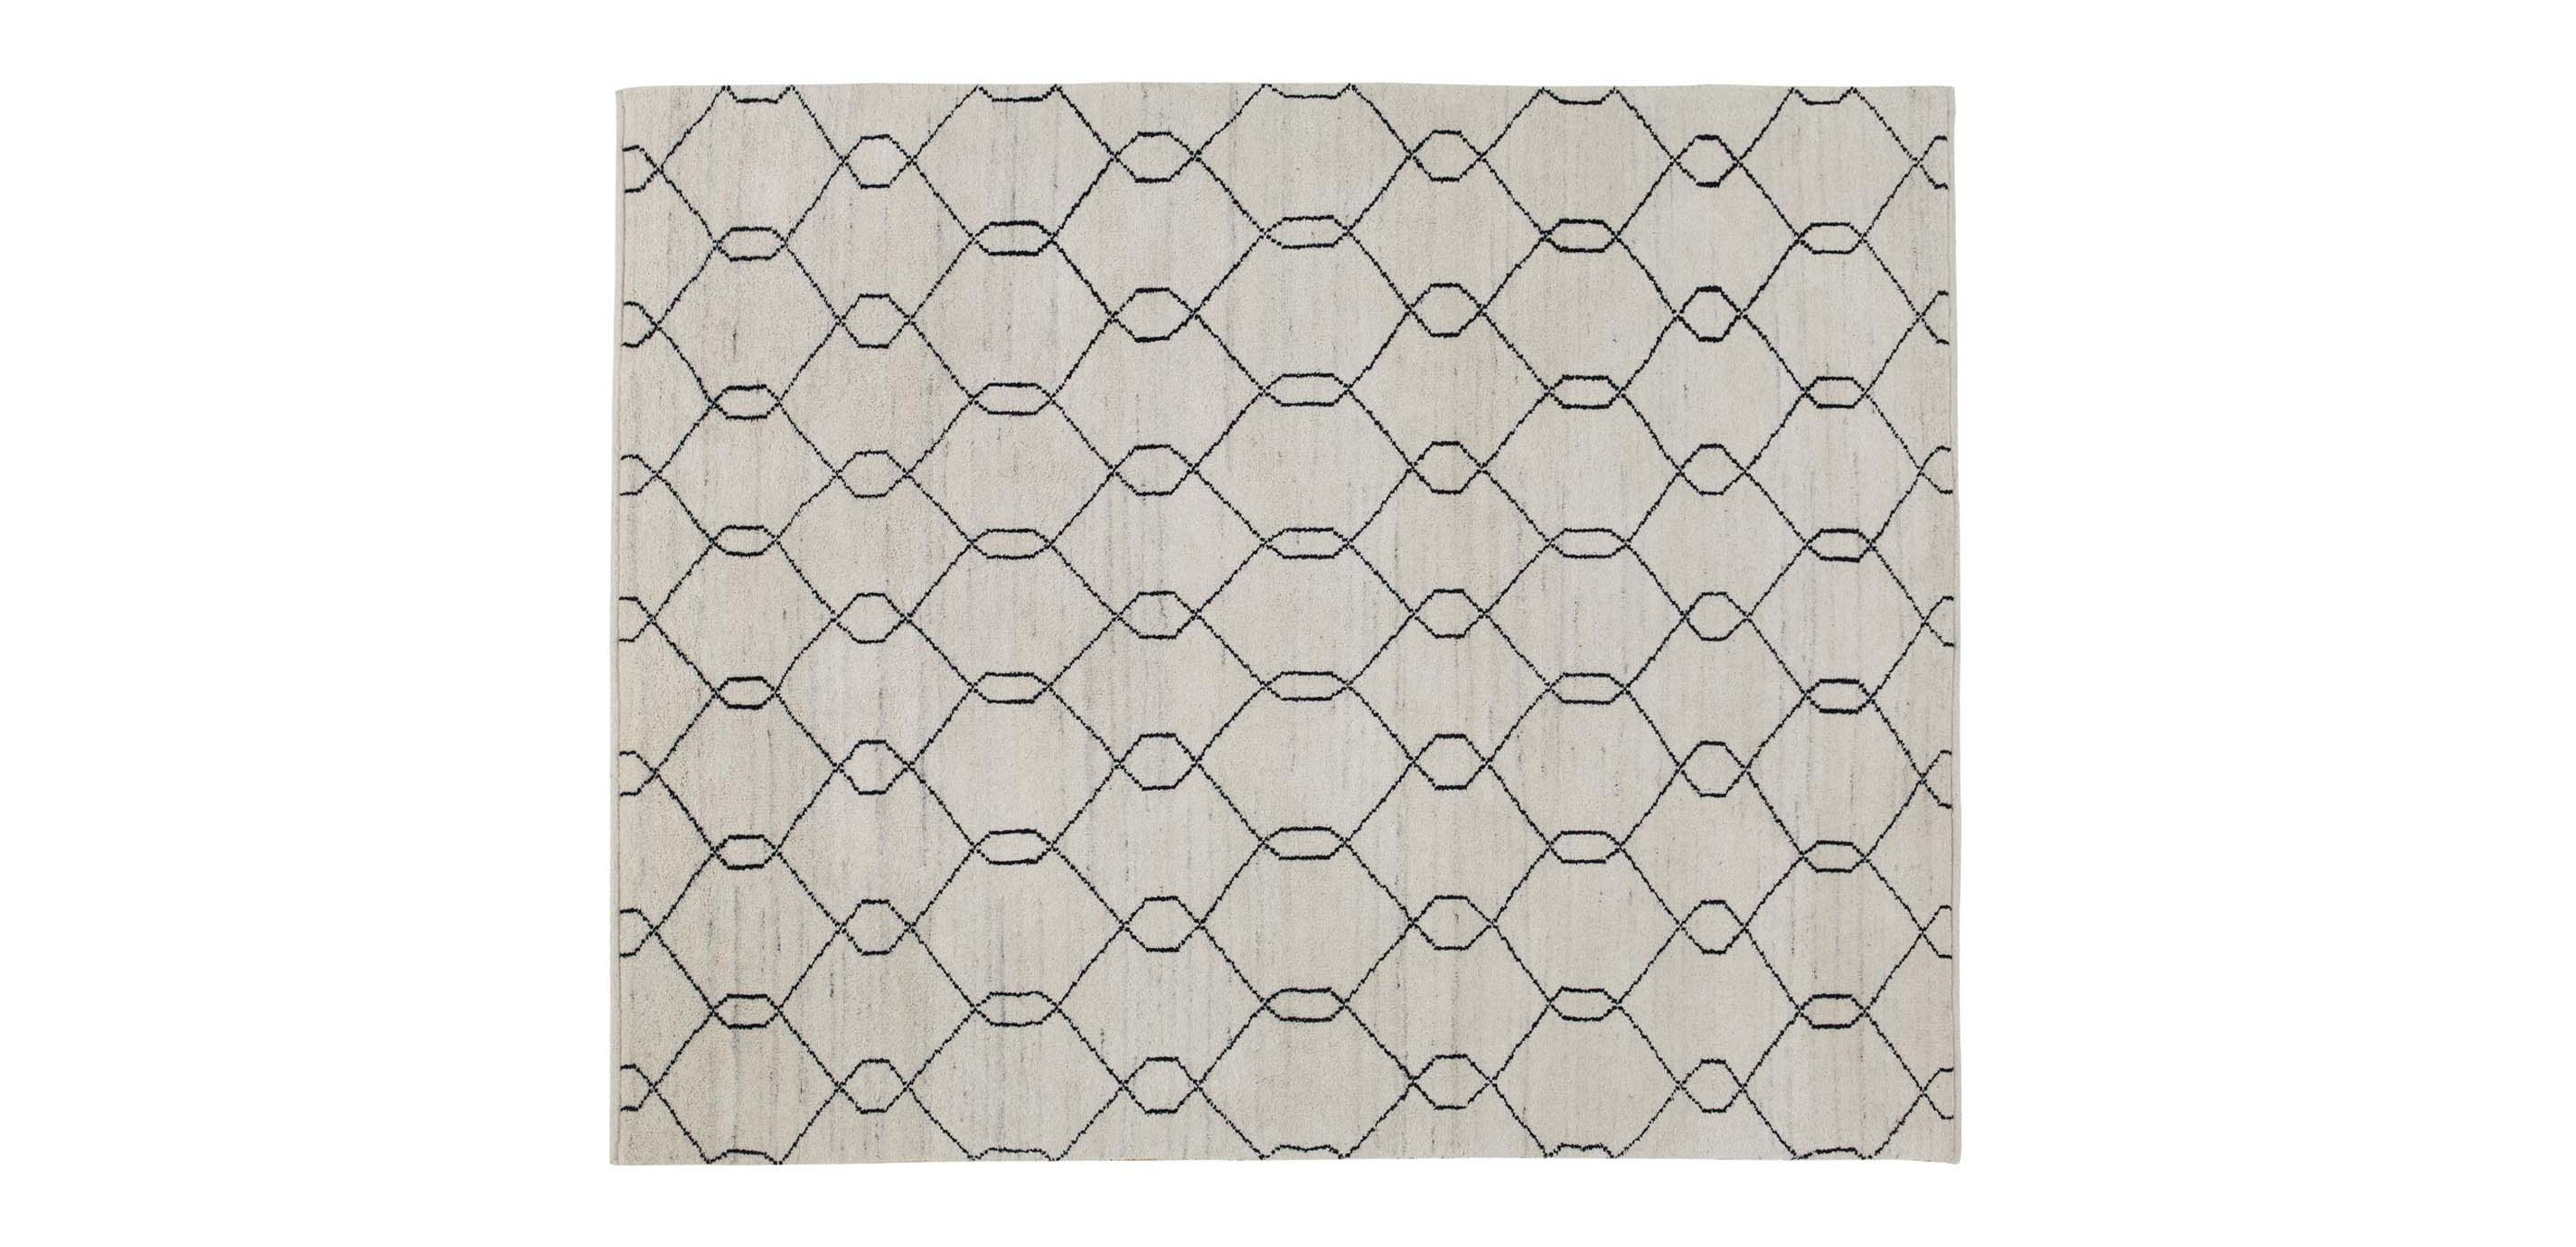 hand qlt anthropologie redesign hei shop slide view constrain tufted rug trellis fit zoom